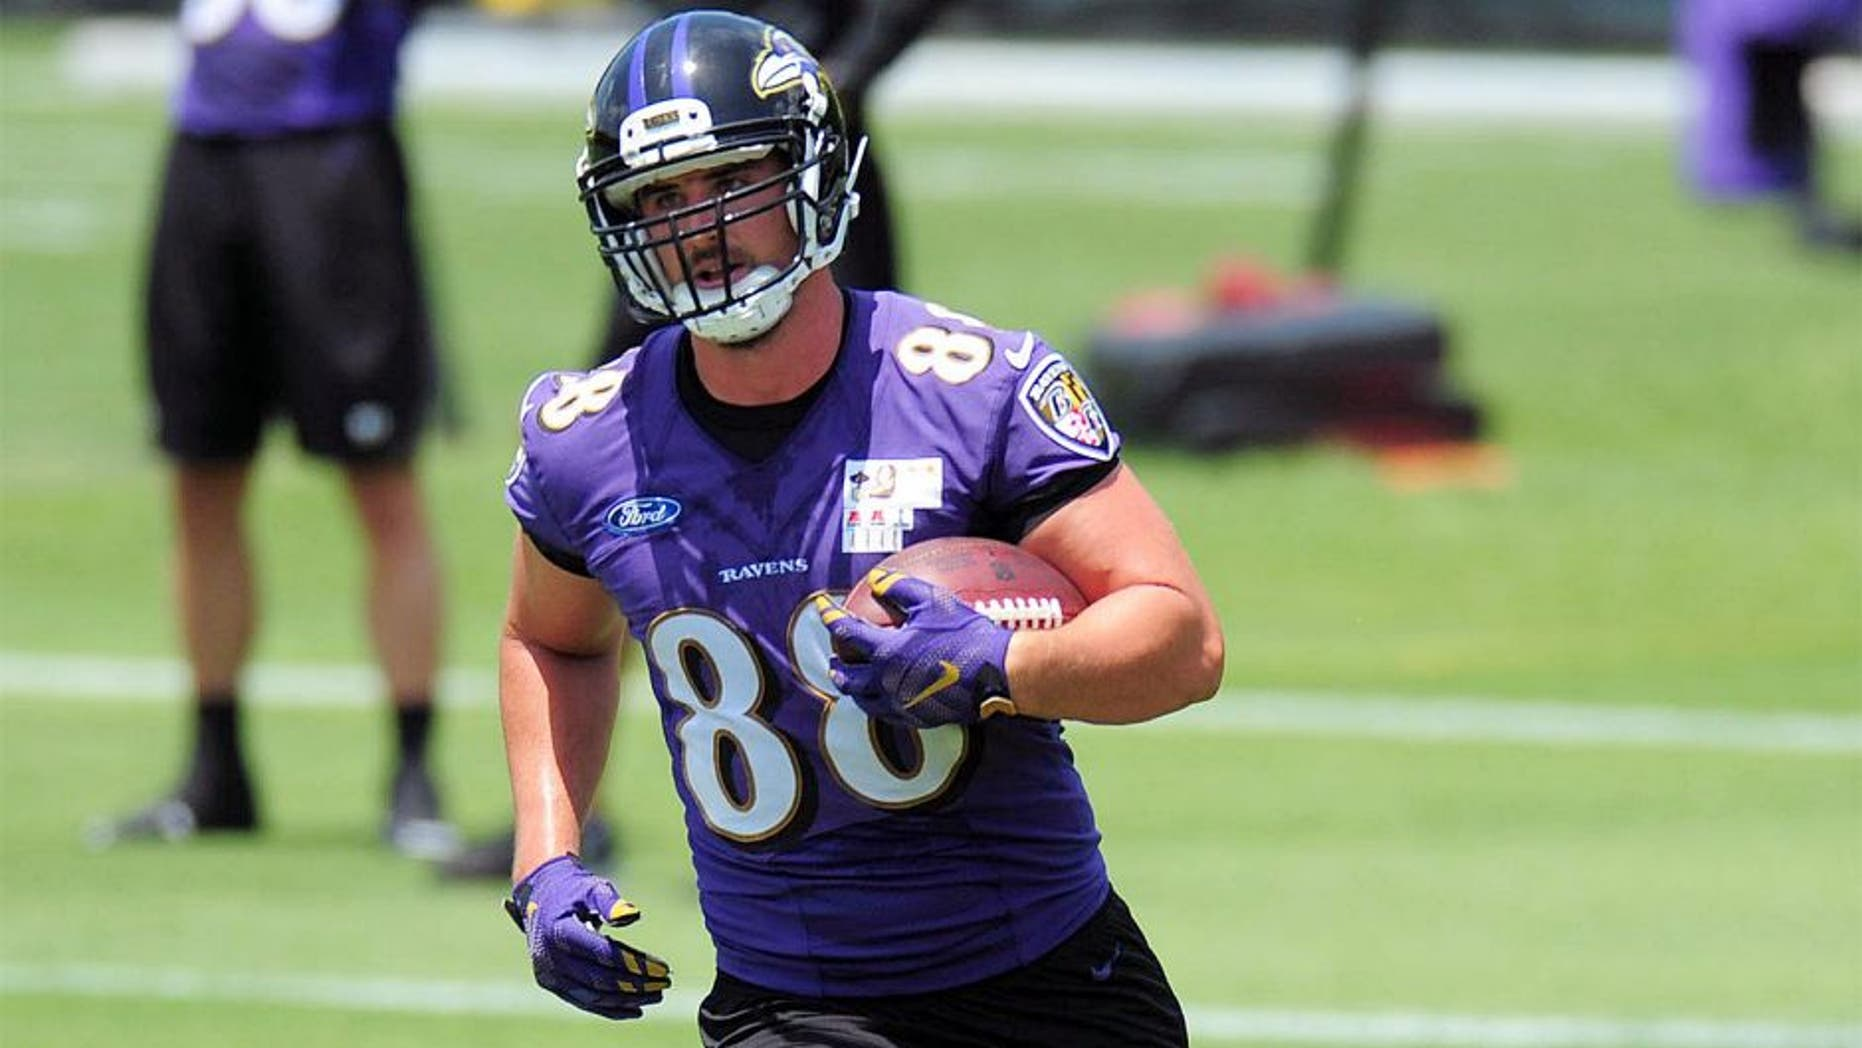 May 28, 2015; Baltimore, MD, USA; Baltimore Ravens tight end Dennis Pitta (88) runs with the ball during training camp at the Under Armour Performance Center. Mandatory Credit: Evan Habeeb-USA TODAY Sports